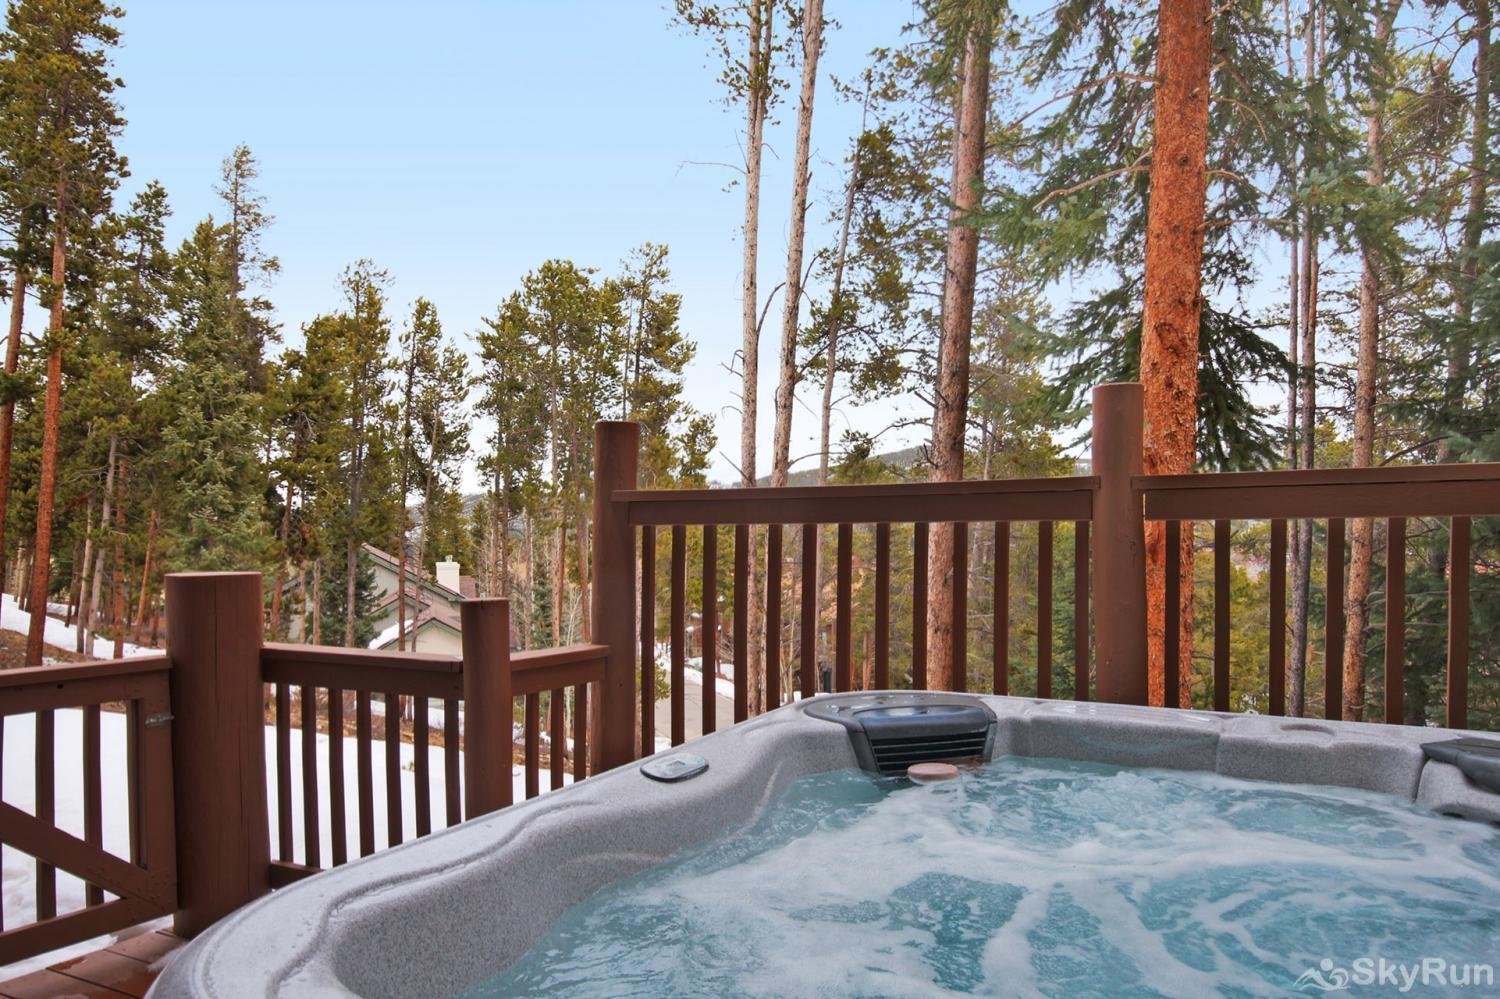 Elk Ridge 406 Relax and unwind in your private outdoor hot tub